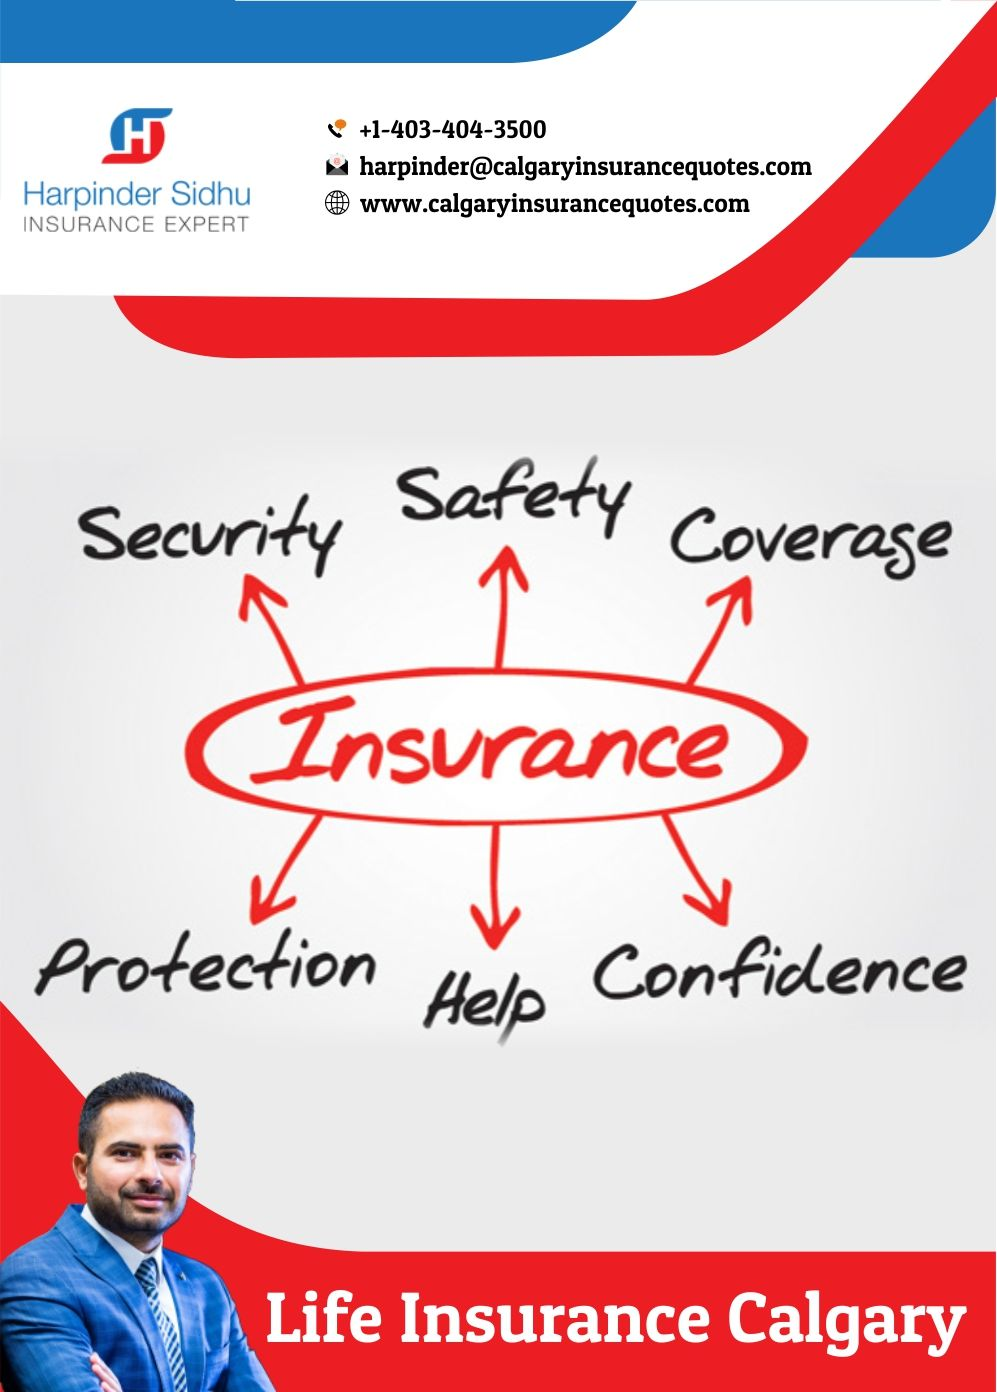 Calgary Insurance Quotes Are The Best And Trusted Insurance Company In Canada Alberta Canada Life Insurance Quotes Insurance Quotes Life Insurance Companies